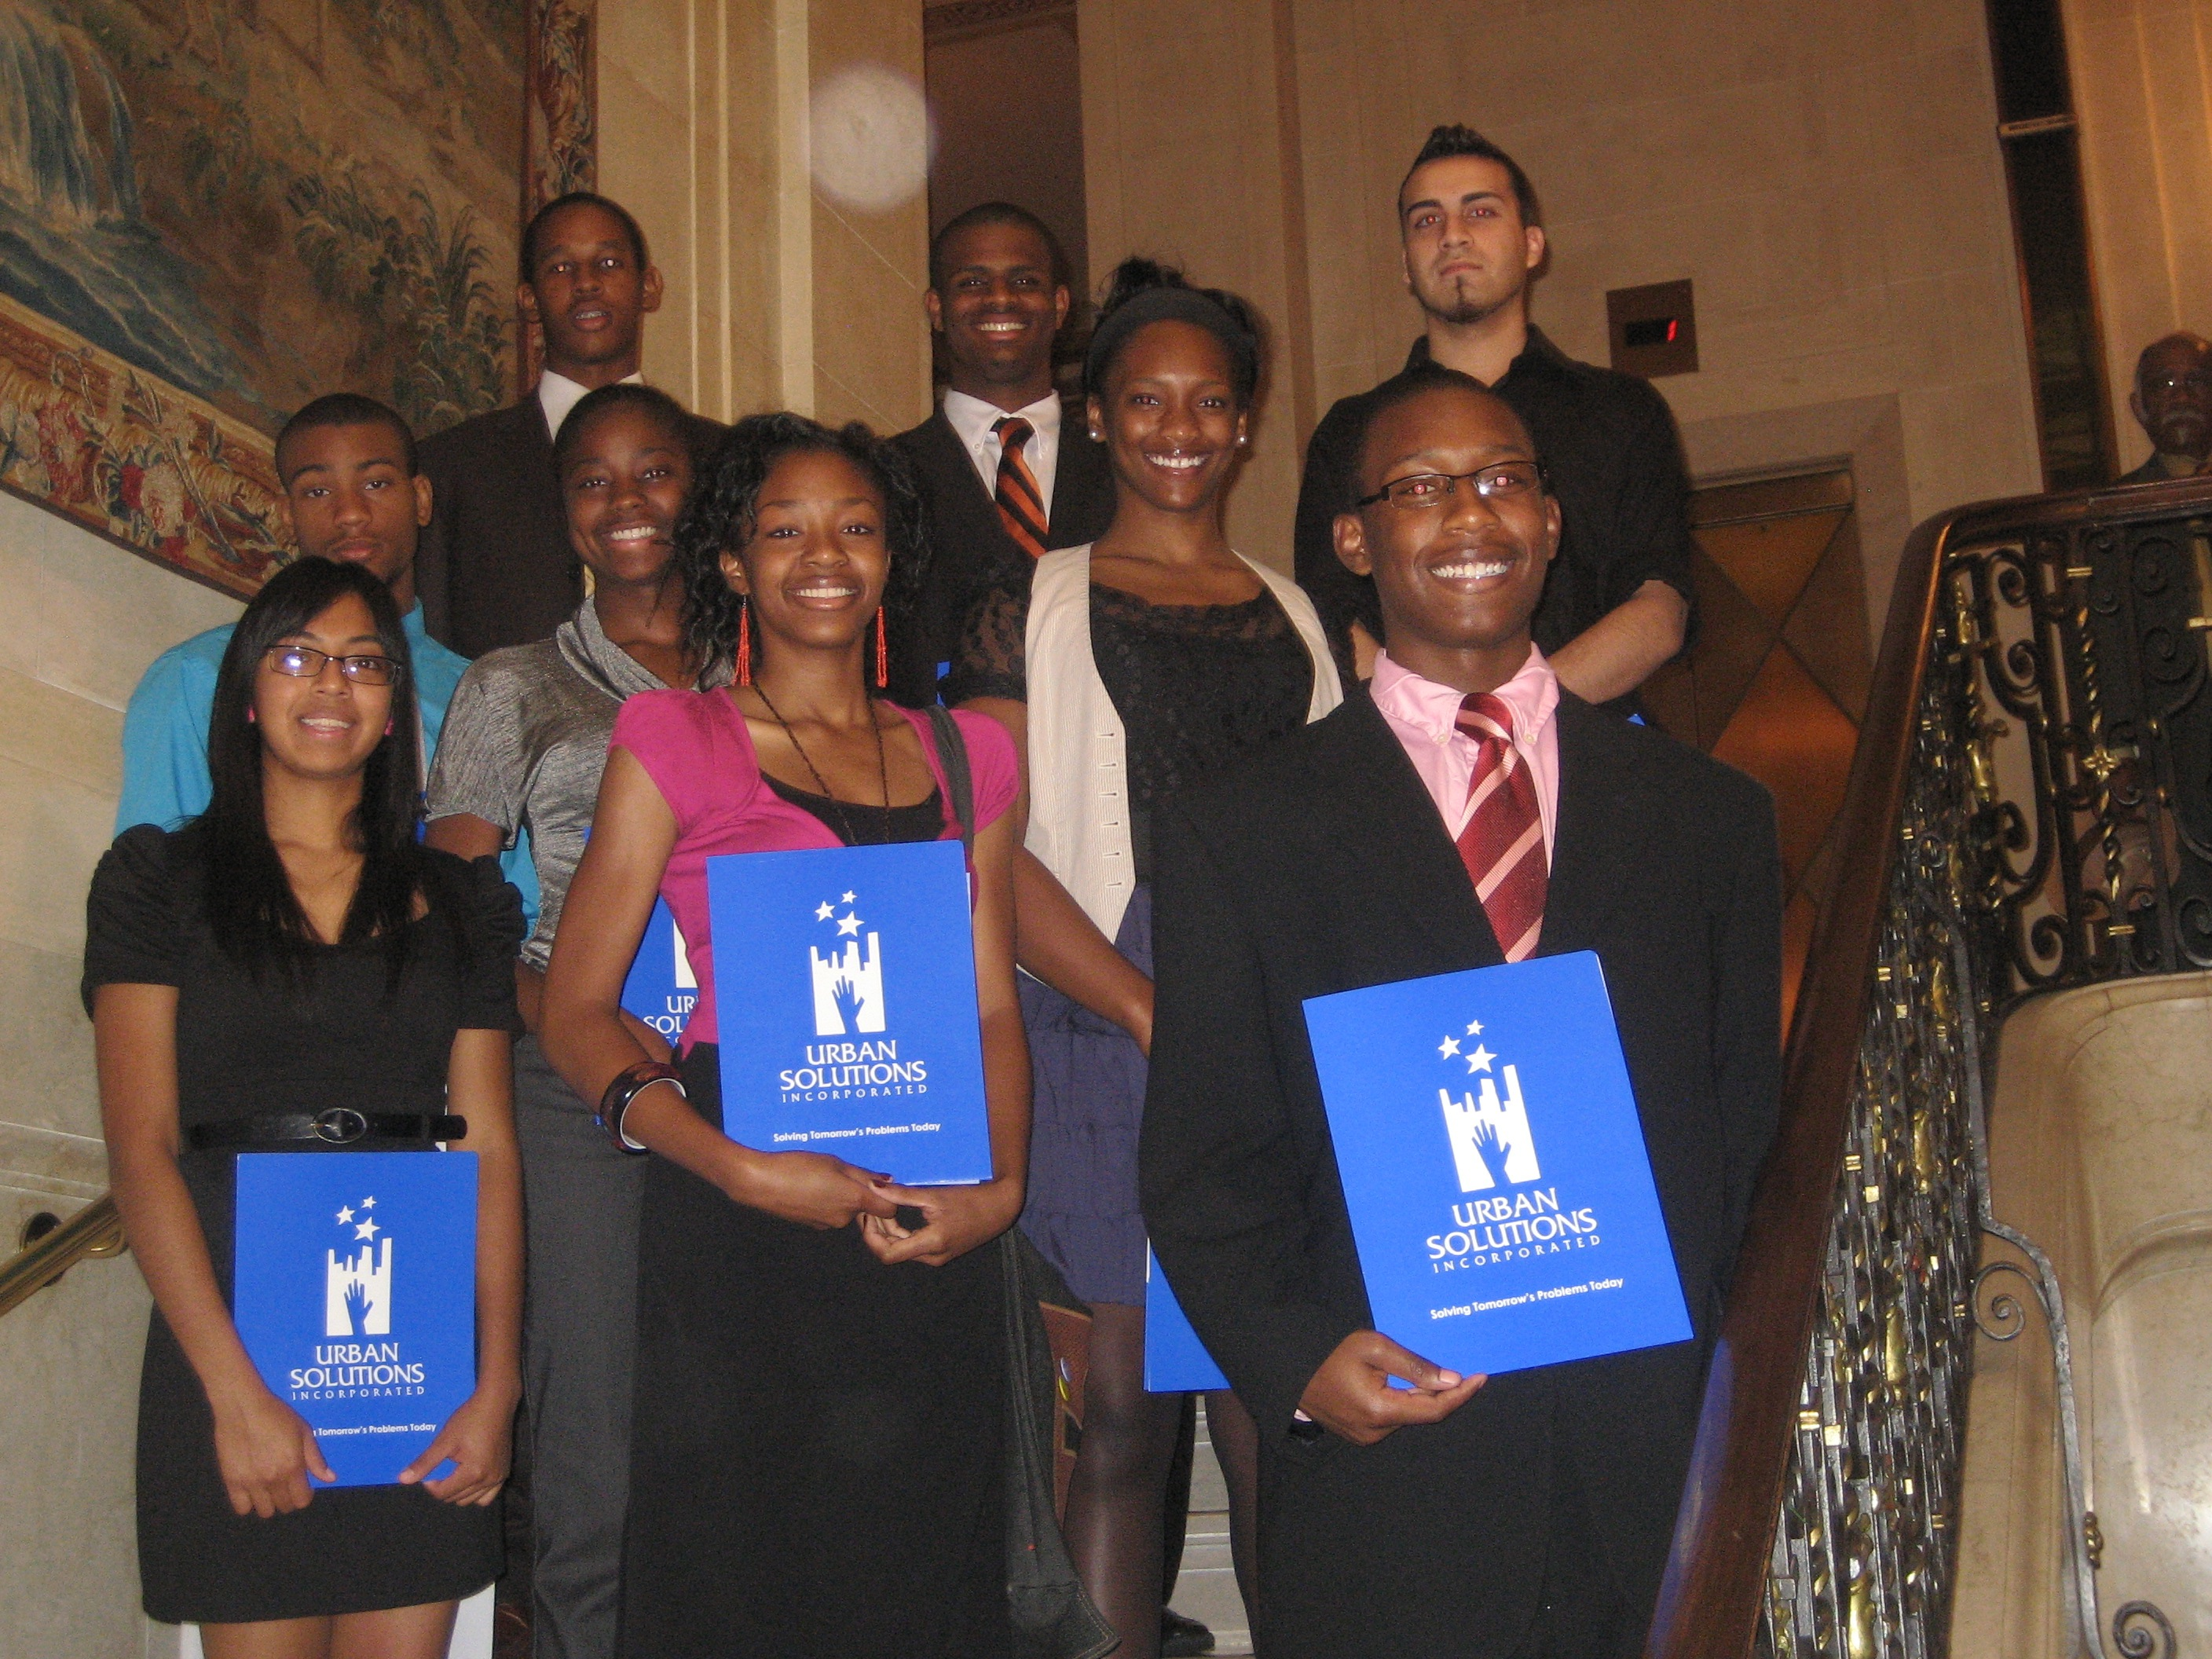 Pressley Green Scholarship Fundraising Campaign Launched